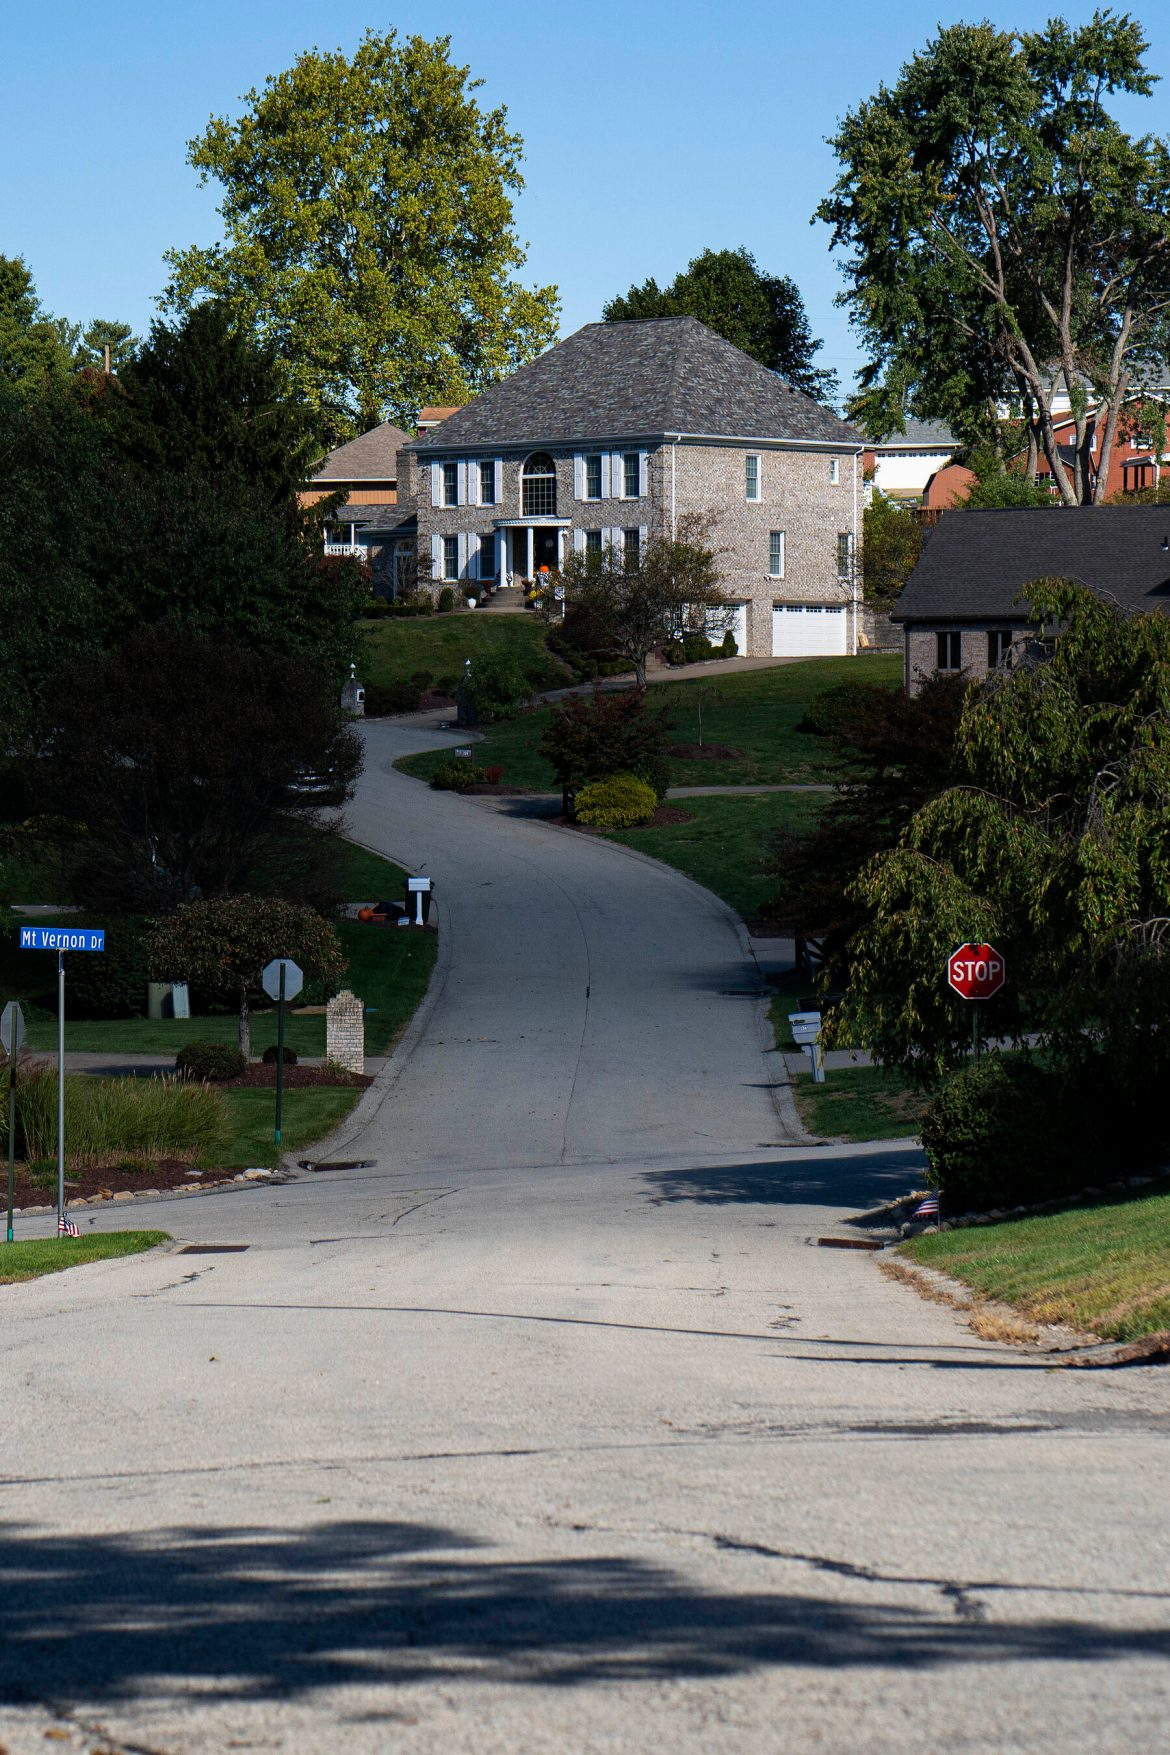 In 2020, the Suburbs Are Stressed